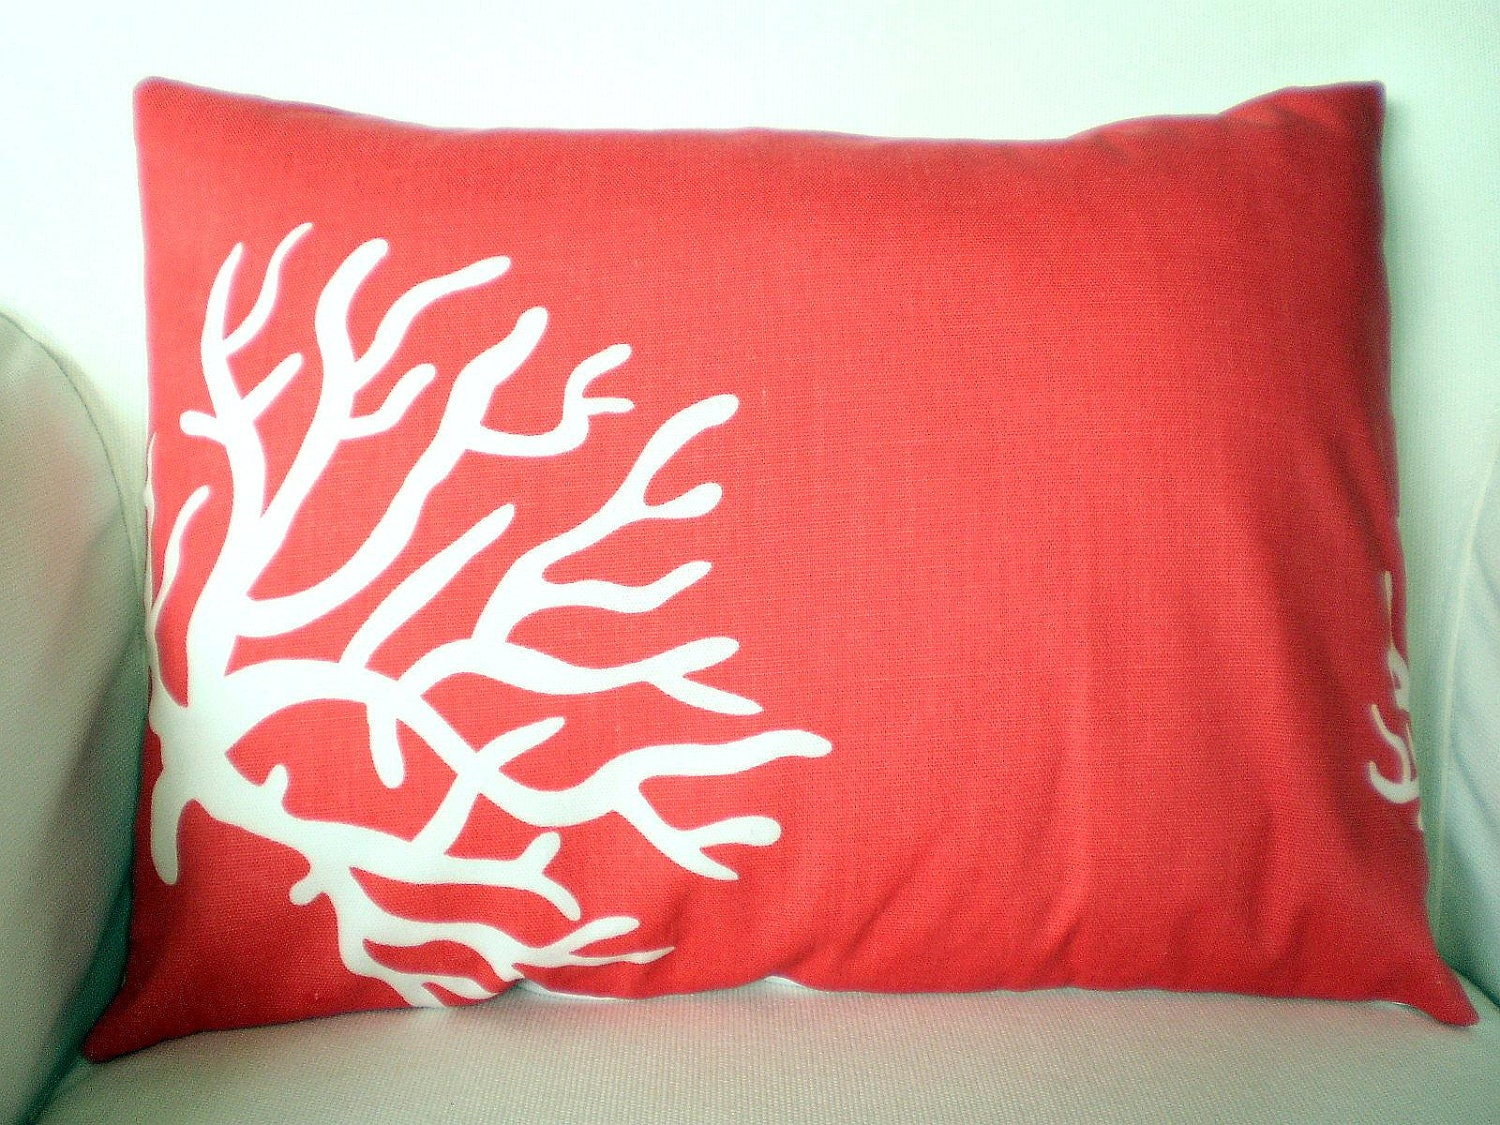 Throw Pillows Coral : Coral Lumbar Pillow Cover Decorative Throw Pillow Cushion